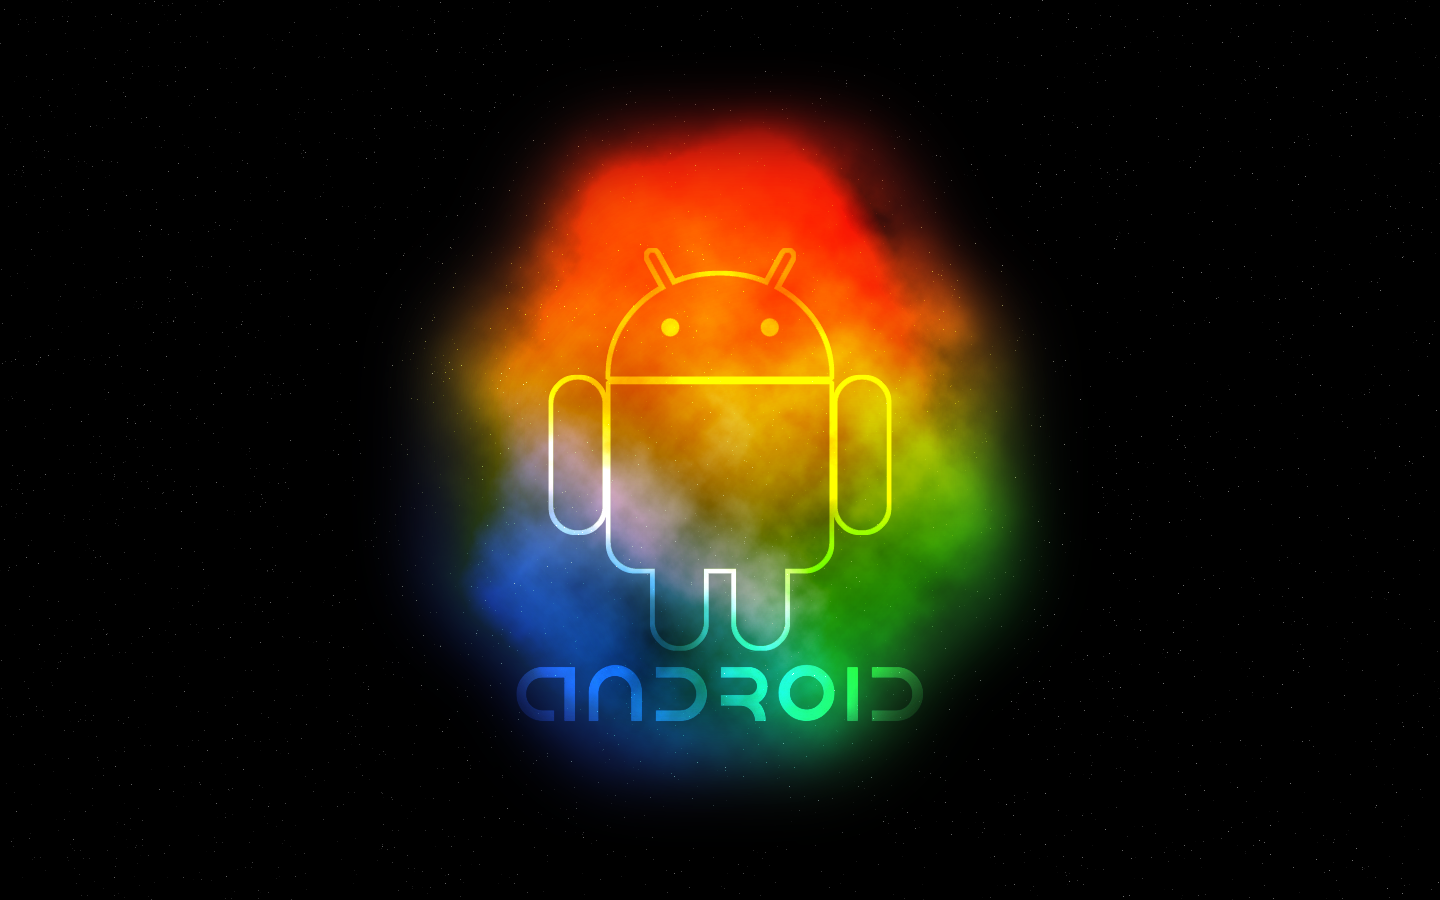 47 android tablet wallpaper hd on wallpapersafari - Wallpapers android hd ...